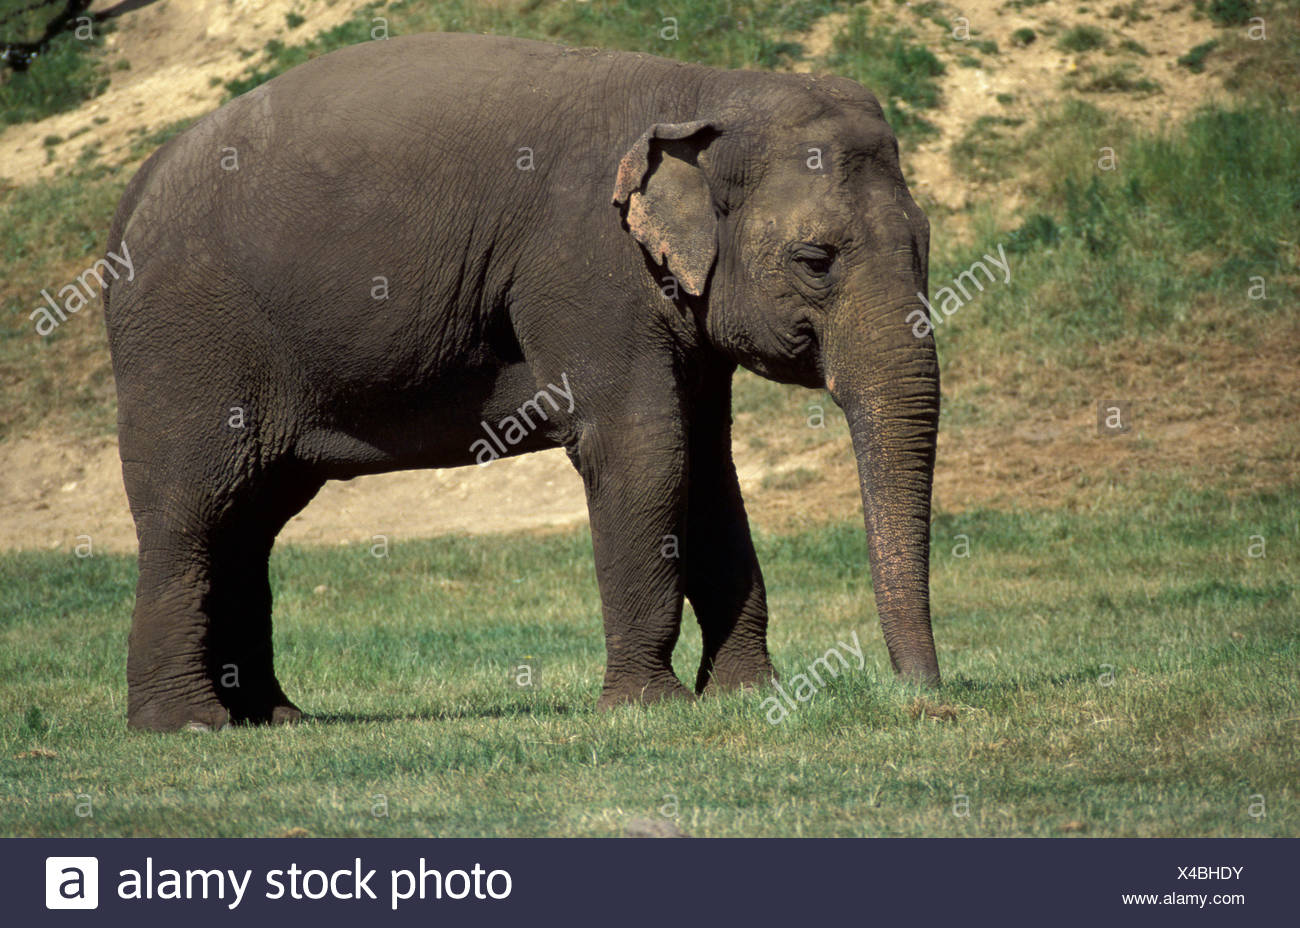 Asian elephant (captive) (Elephas maximus), showing whole body and small ears, and long trunk - Stock Image